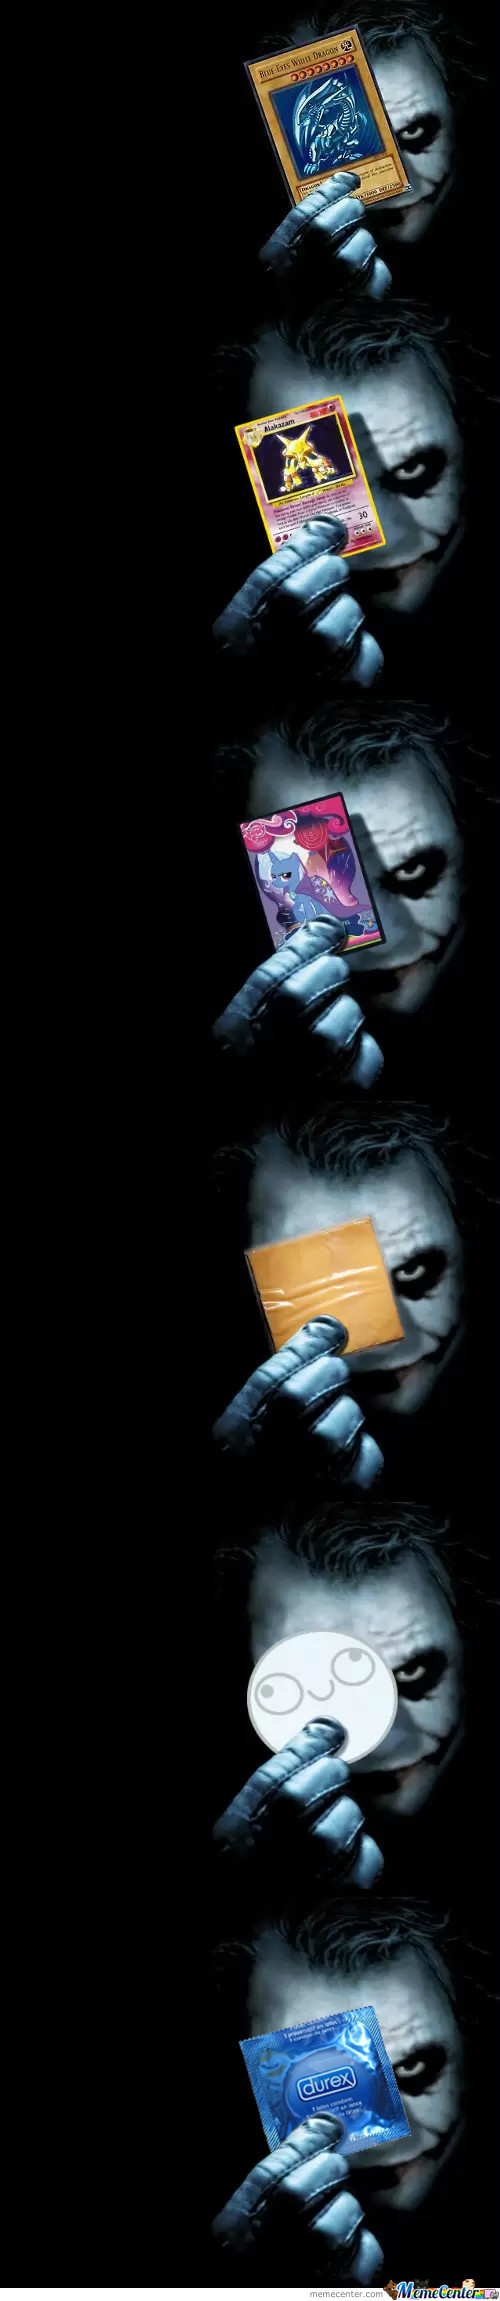 [RMX] [RMX] The Joker's Trump Card